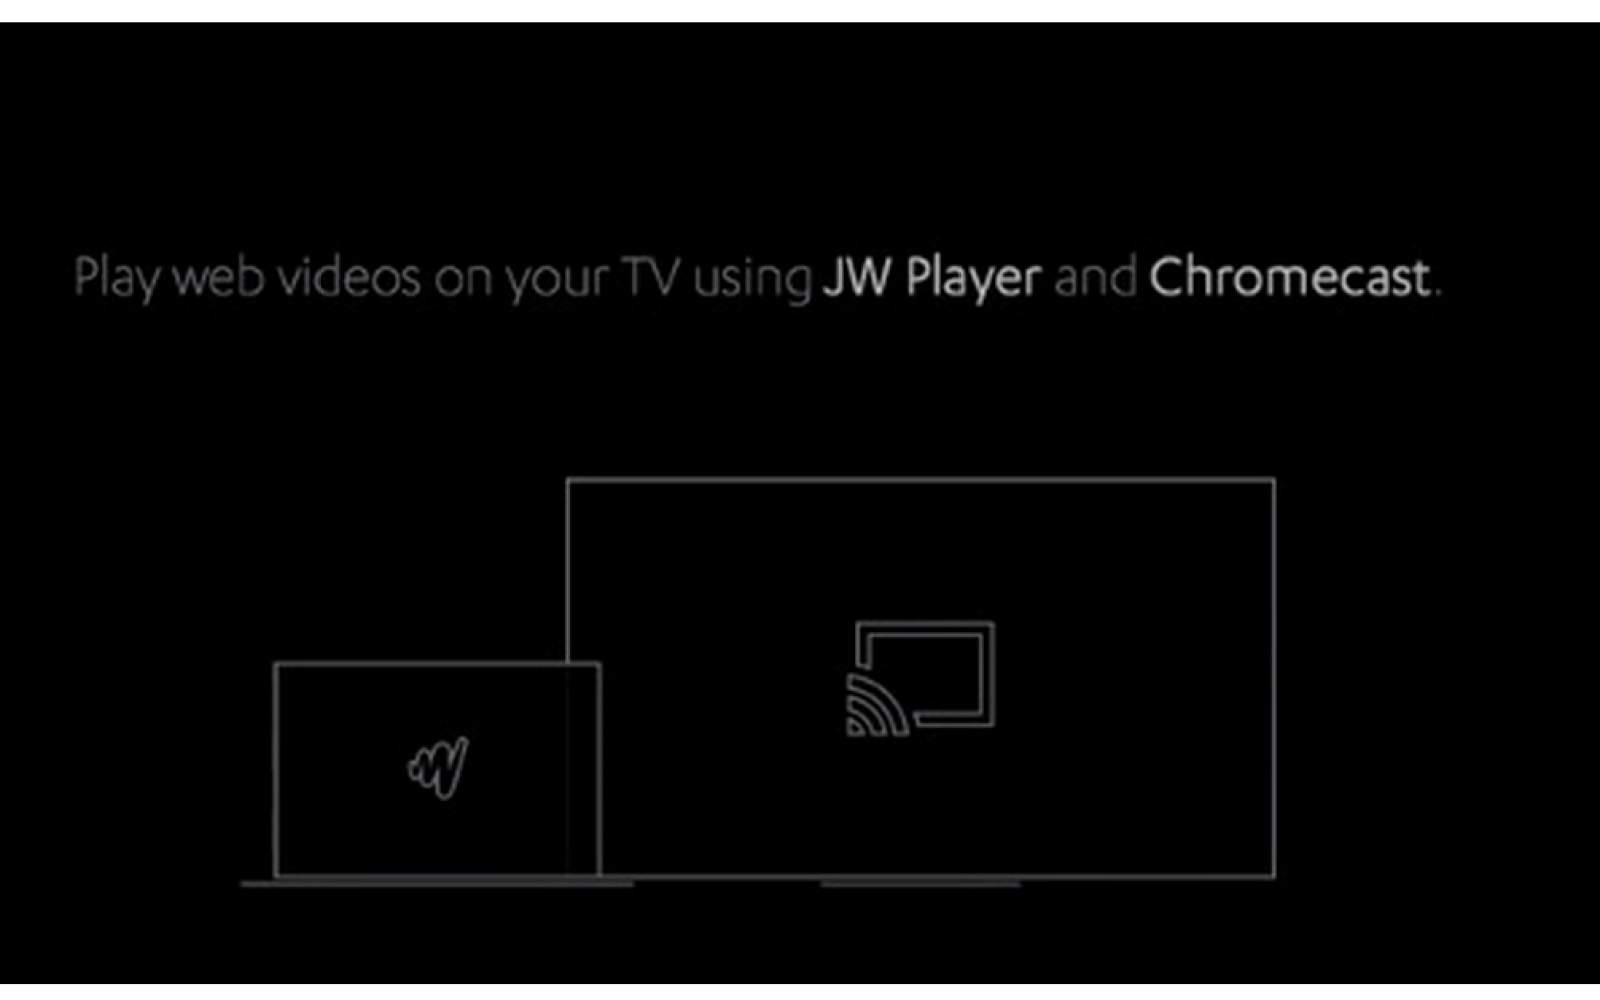 JW Player updated to version 6 9, brings Chromecast support